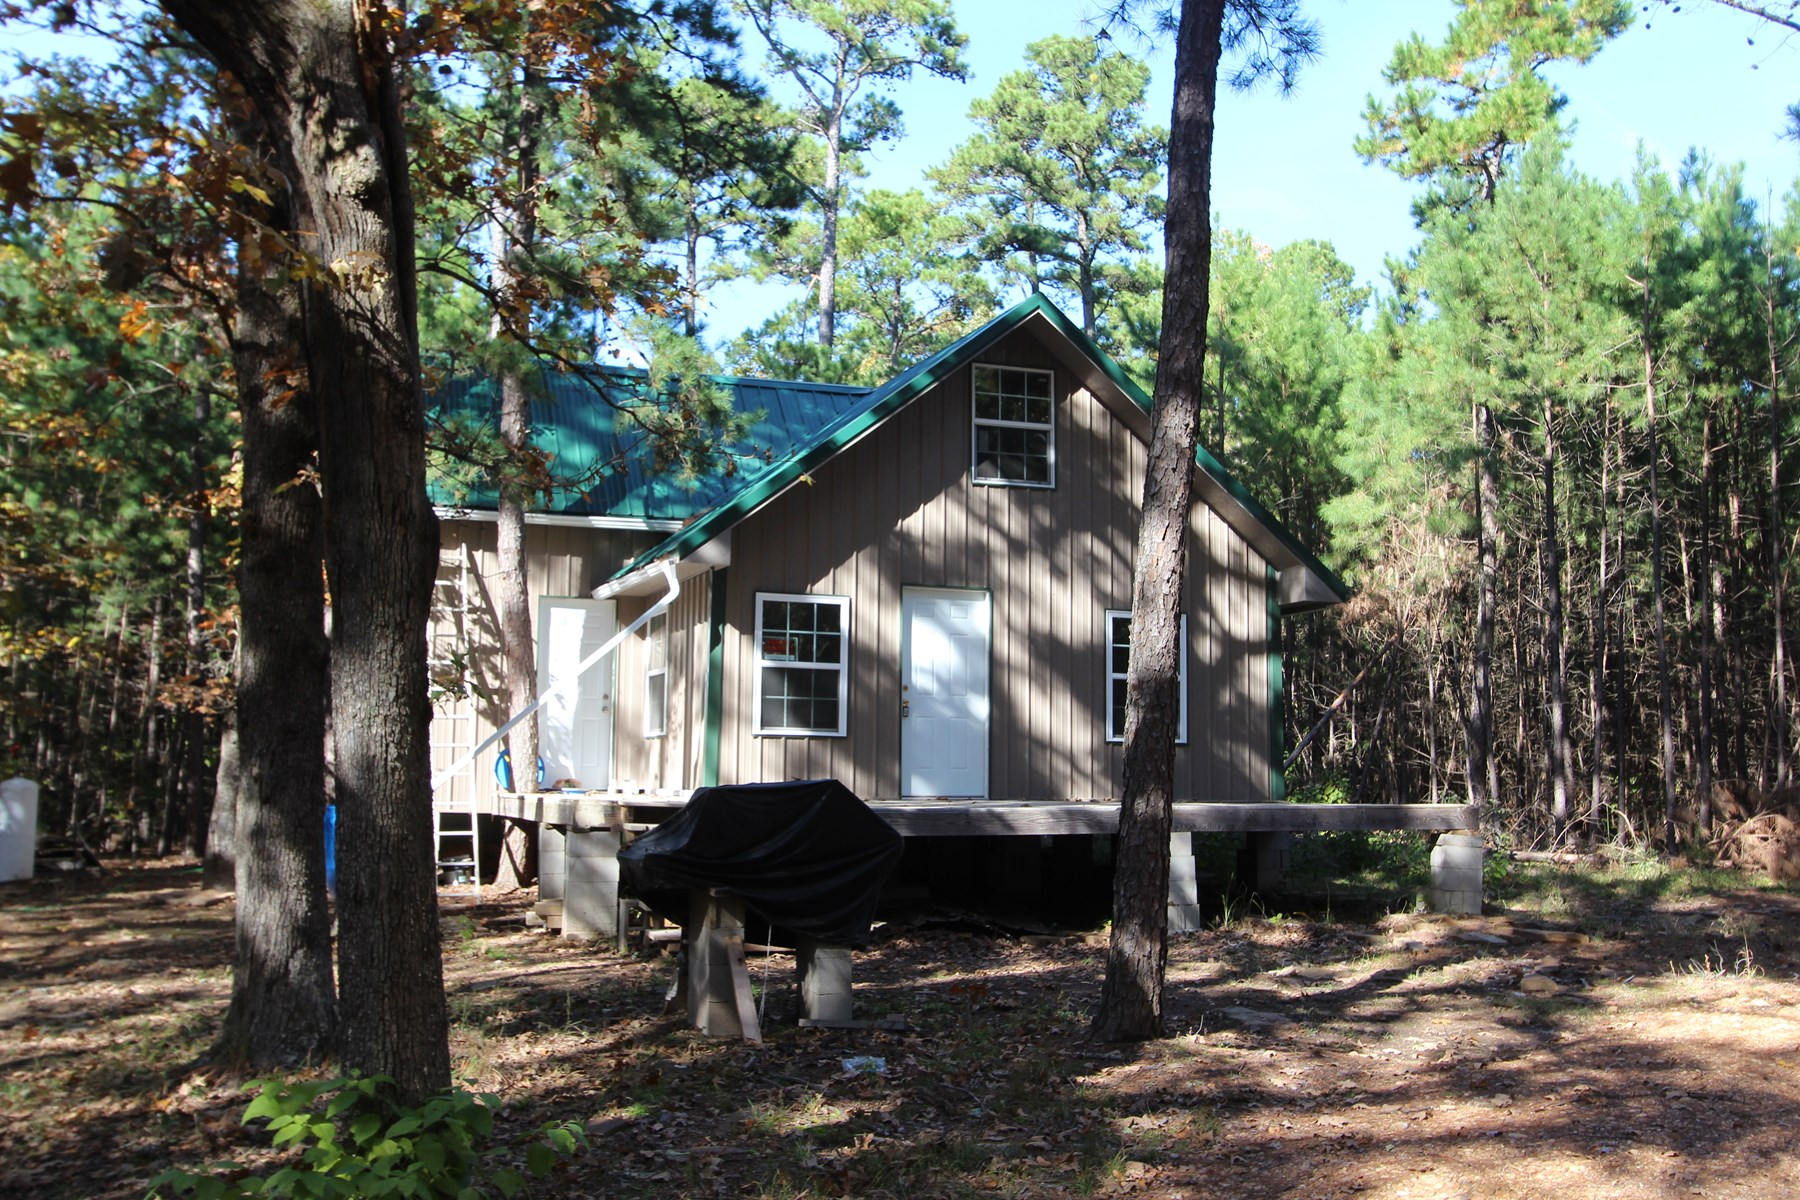 Mountain Cabin Hunting Property For Sale Moyers Oklahoma